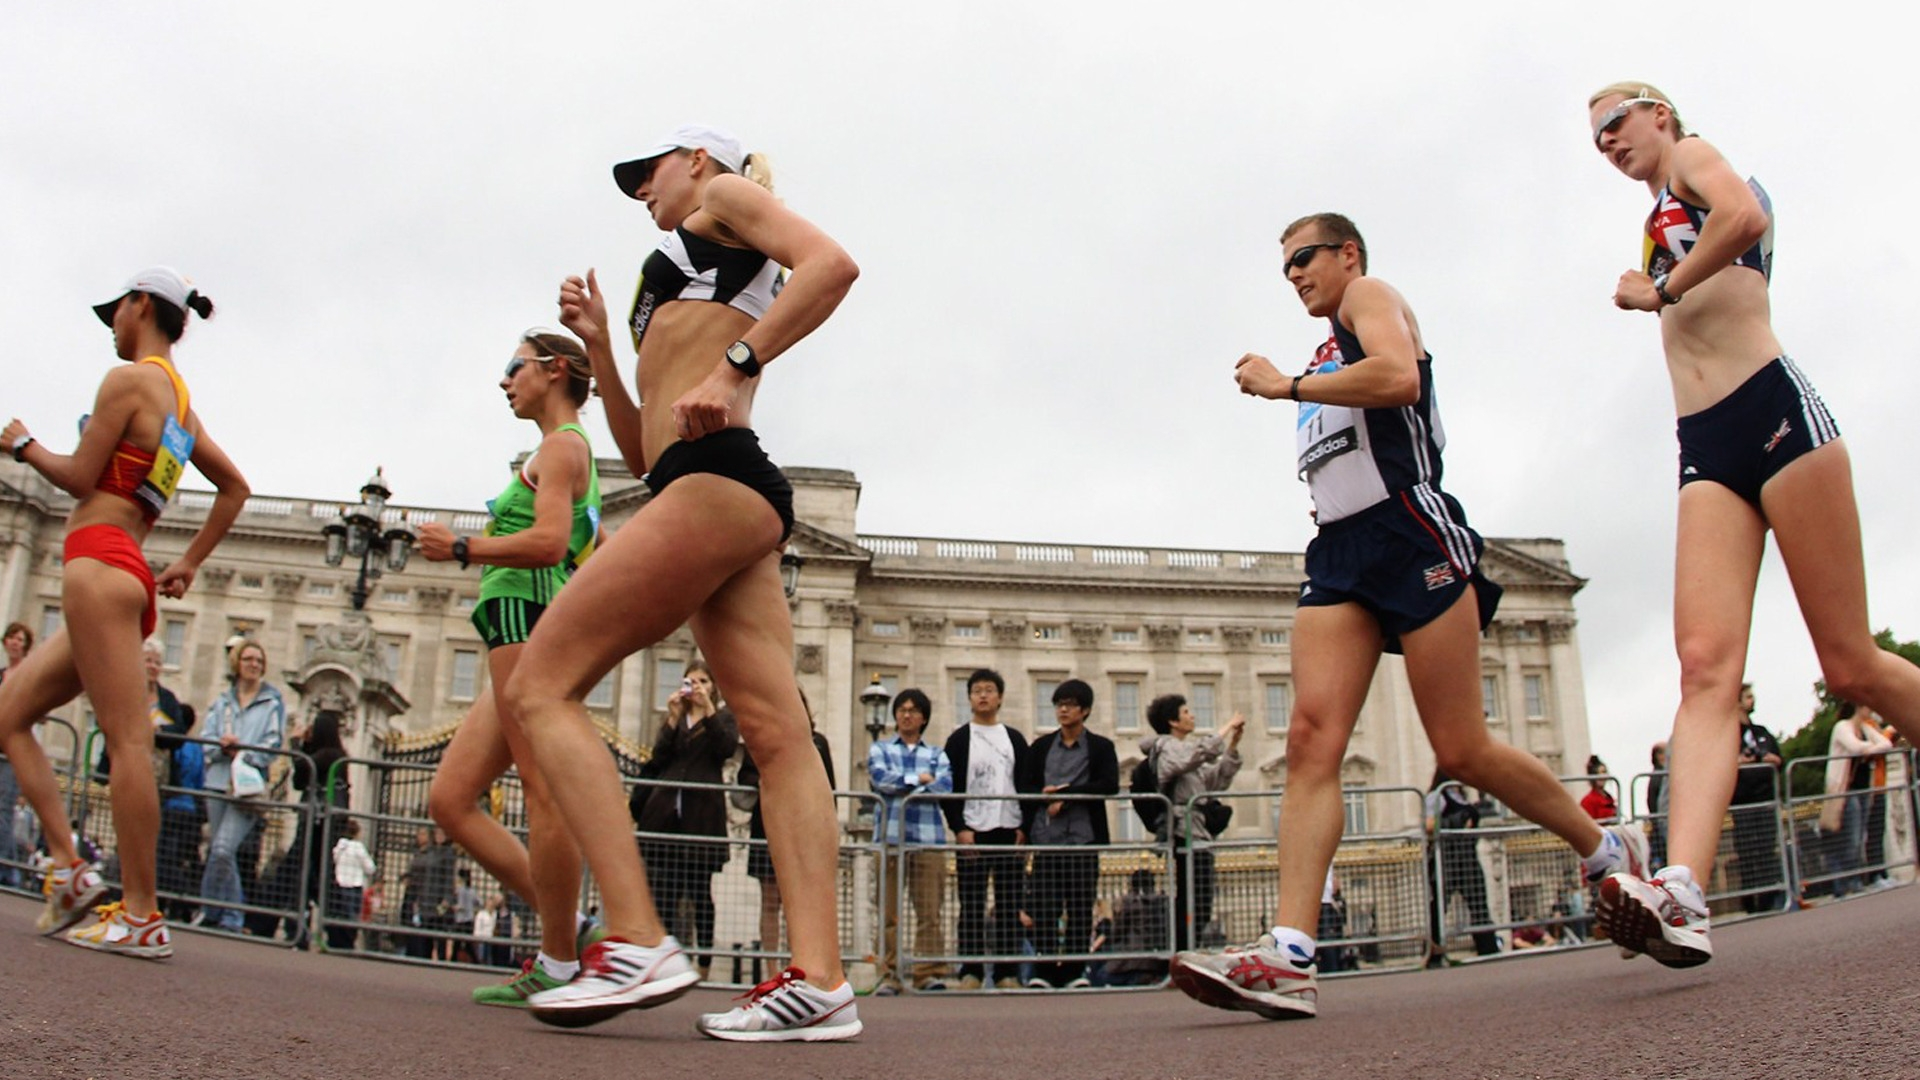 UKA 20km Race Walking Championships for 1920 x 1080 HDTV 1080p resolution